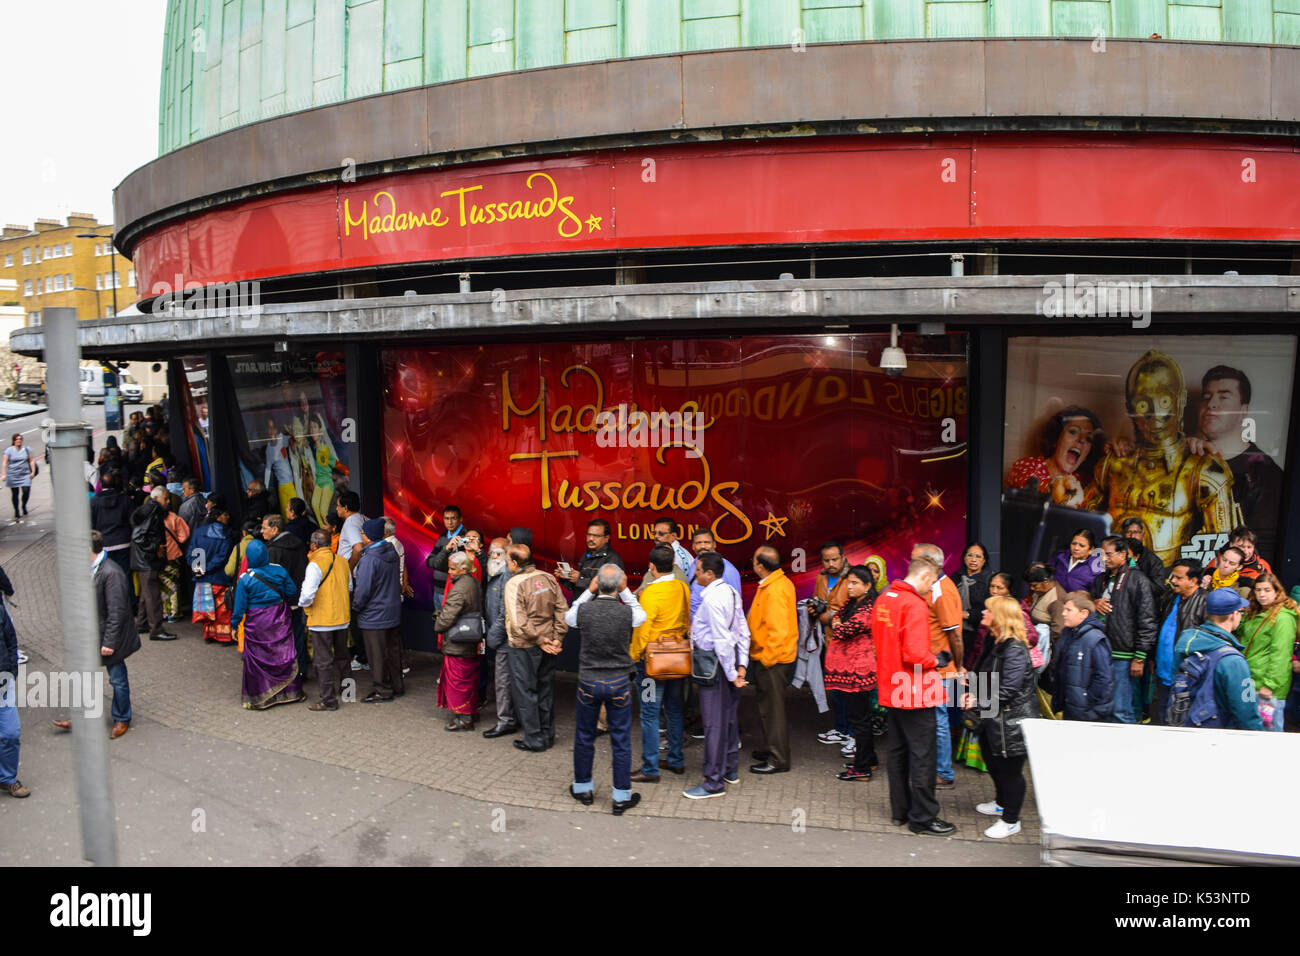 LONDON, UK - JULY 20, 2017: Tourists forming a large queue outside Madame Tussauds - Stock Image